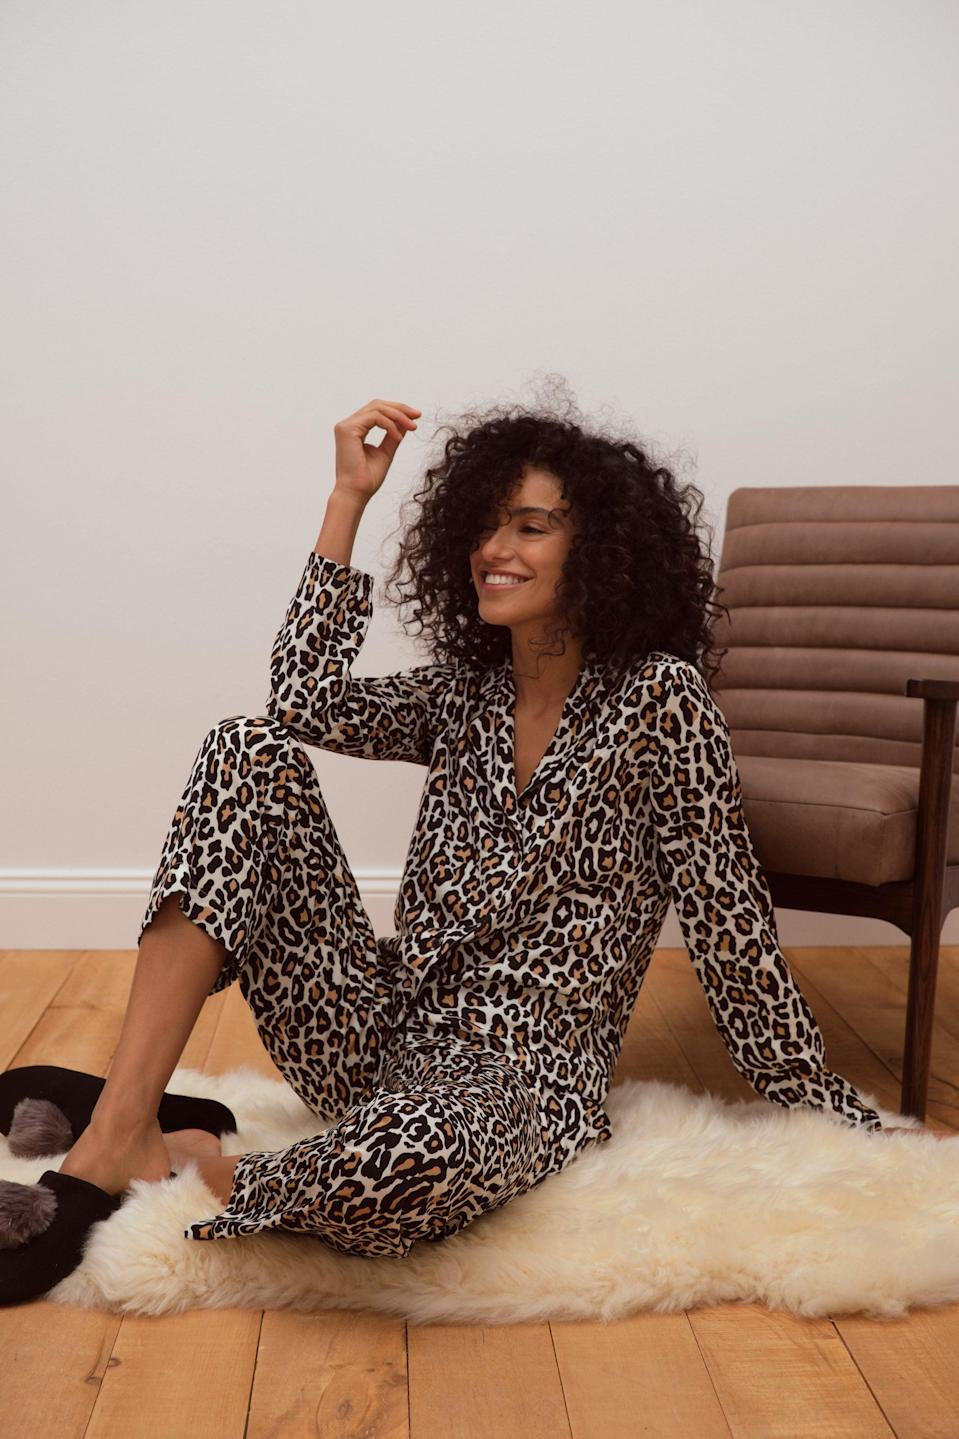 "<strong>— PAID —</strong><br><br>These days, it's perfectly acceptable to stay in PJs all day. Give the serial lounger in your crew a major upgrade with this luxe sleepwear set.<br><br><strong>Banana Republic Factory</strong> Pajama Top, $, available at <a href=""https://go.skimresources.com/?id=30283X879131&url=https%3A%2F%2Fbananarepublicfactory.gapfactory.com%2Fbrowse%2Fproduct.do%3Fpid%3D662517031%23pdp-page-content"" rel=""nofollow noopener"" target=""_blank"" data-ylk=""slk:Banana Republic Factory"" class=""link rapid-noclick-resp"">Banana Republic Factory</a><br><br><strong>Banana Republic Factory</strong> Pajama Bottom, $, available at <a href=""https://go.skimresources.com/?id=30283X879131&url=https%3A%2F%2Fbananarepublicfactory.gapfactory.com%2Fbrowse%2Fproduct.do%3Fpid%3D654022041%23pdp-page-content"" rel=""nofollow noopener"" target=""_blank"" data-ylk=""slk:Banana Republic Factory"" class=""link rapid-noclick-resp"">Banana Republic Factory</a>"